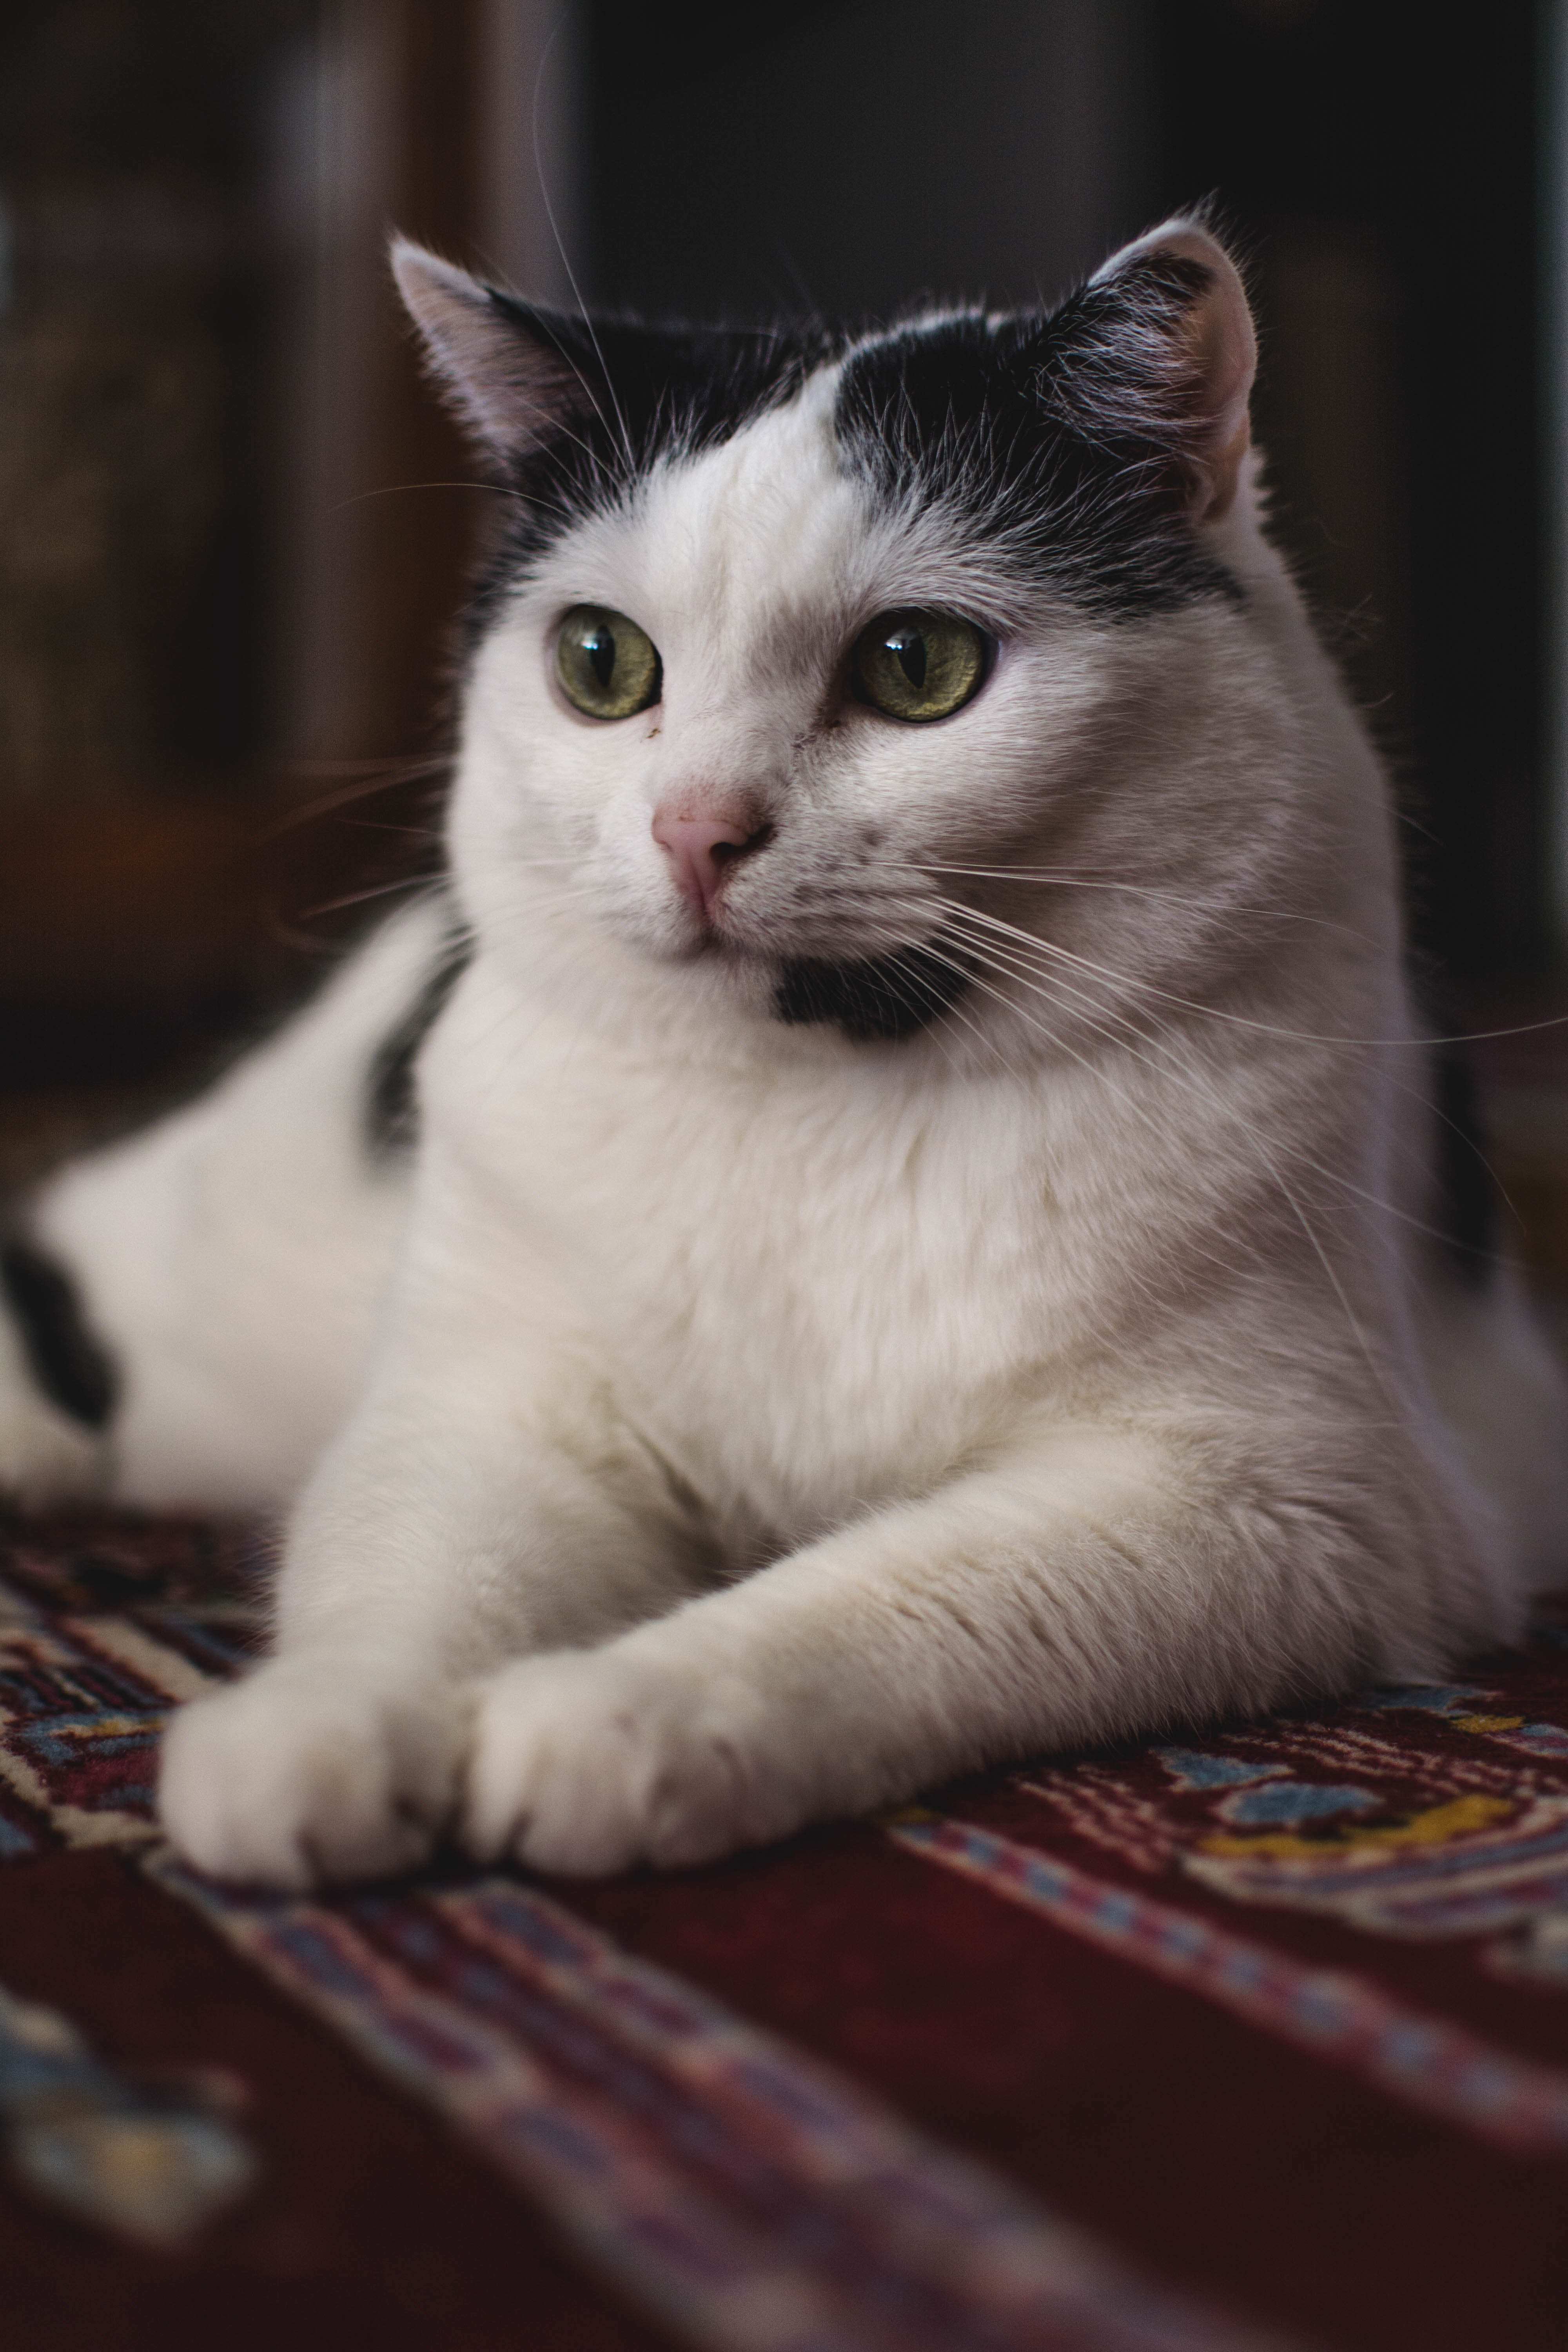 Selective Focus Photography Of Black And White Cat · Free Stock Photo